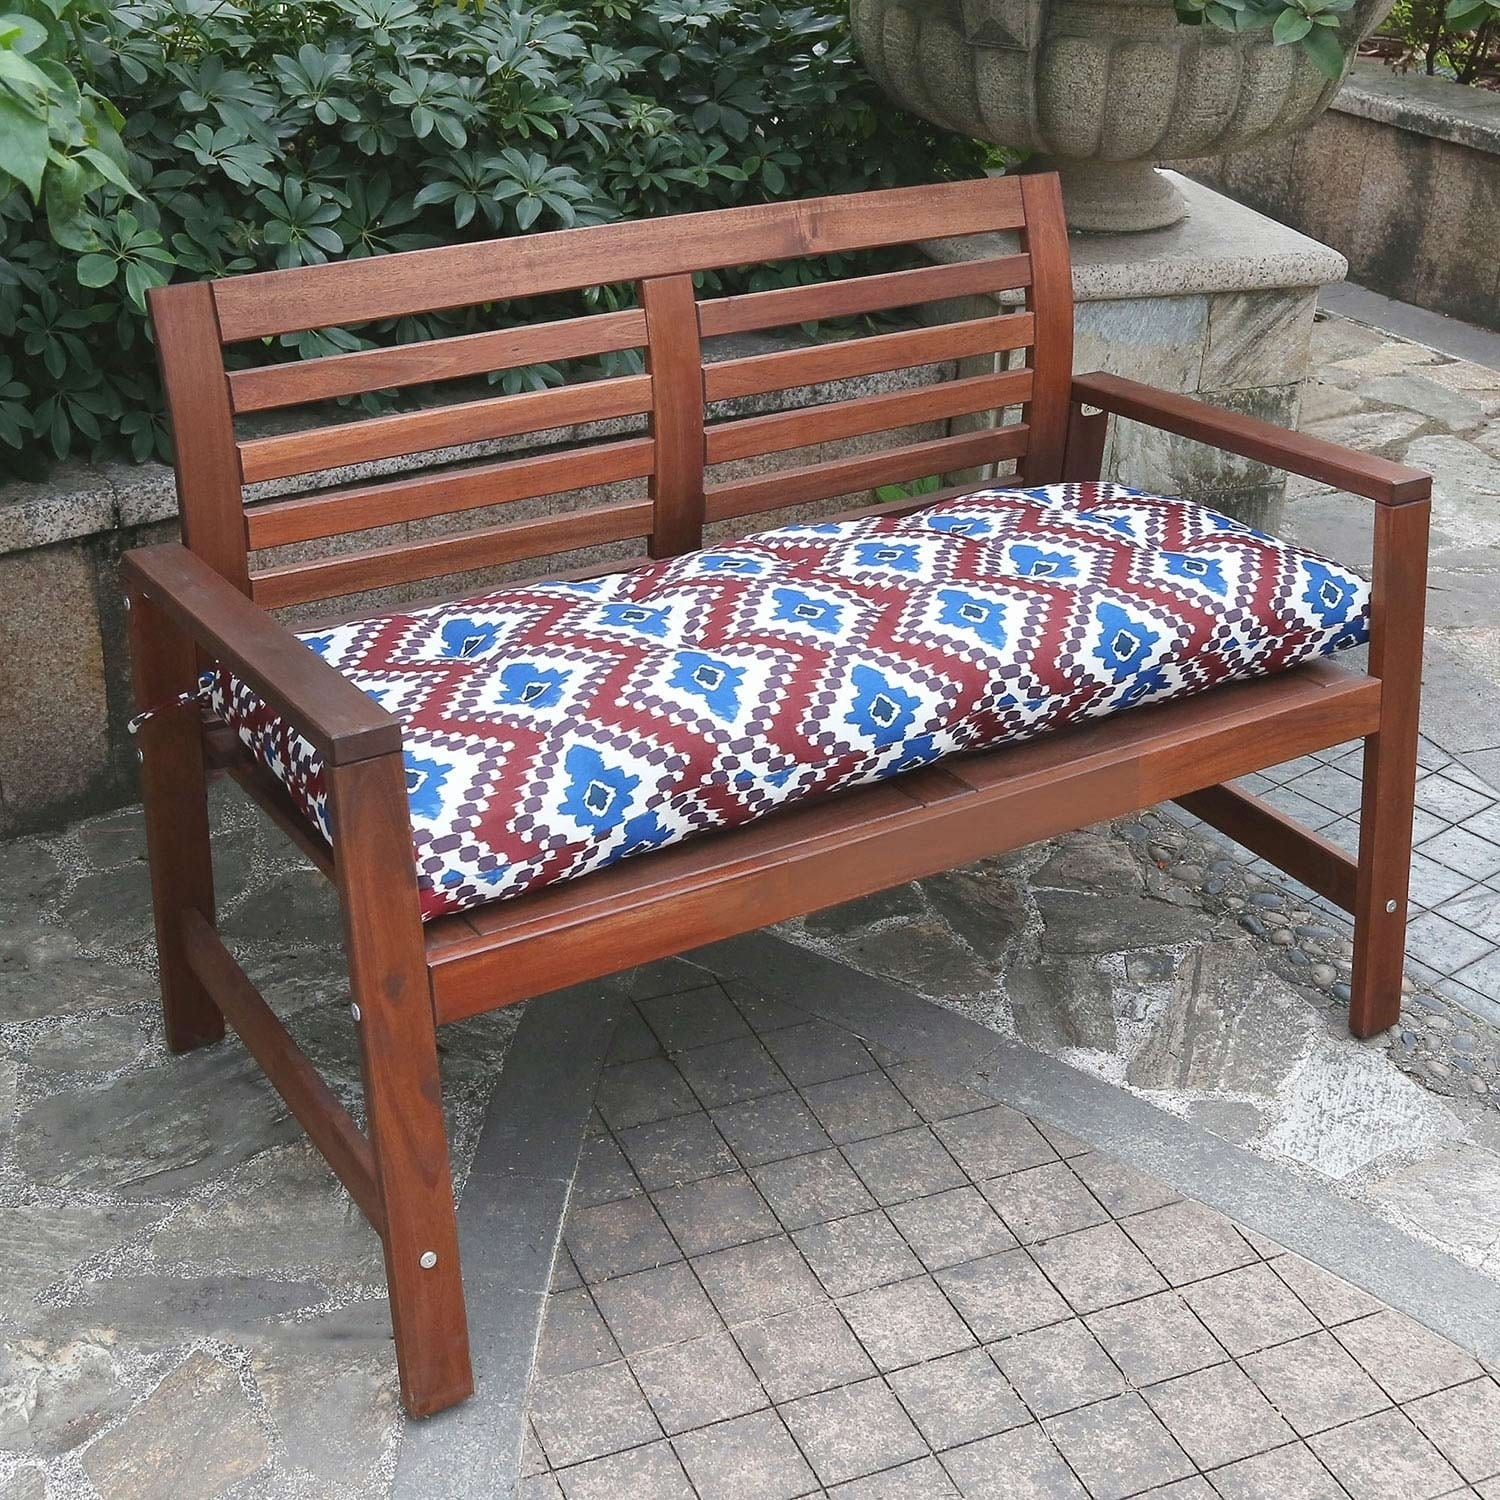 Shop Black Friday Deals On Red Ikat Bench Cushion By Havenside Home On Sale Overstock 28667504